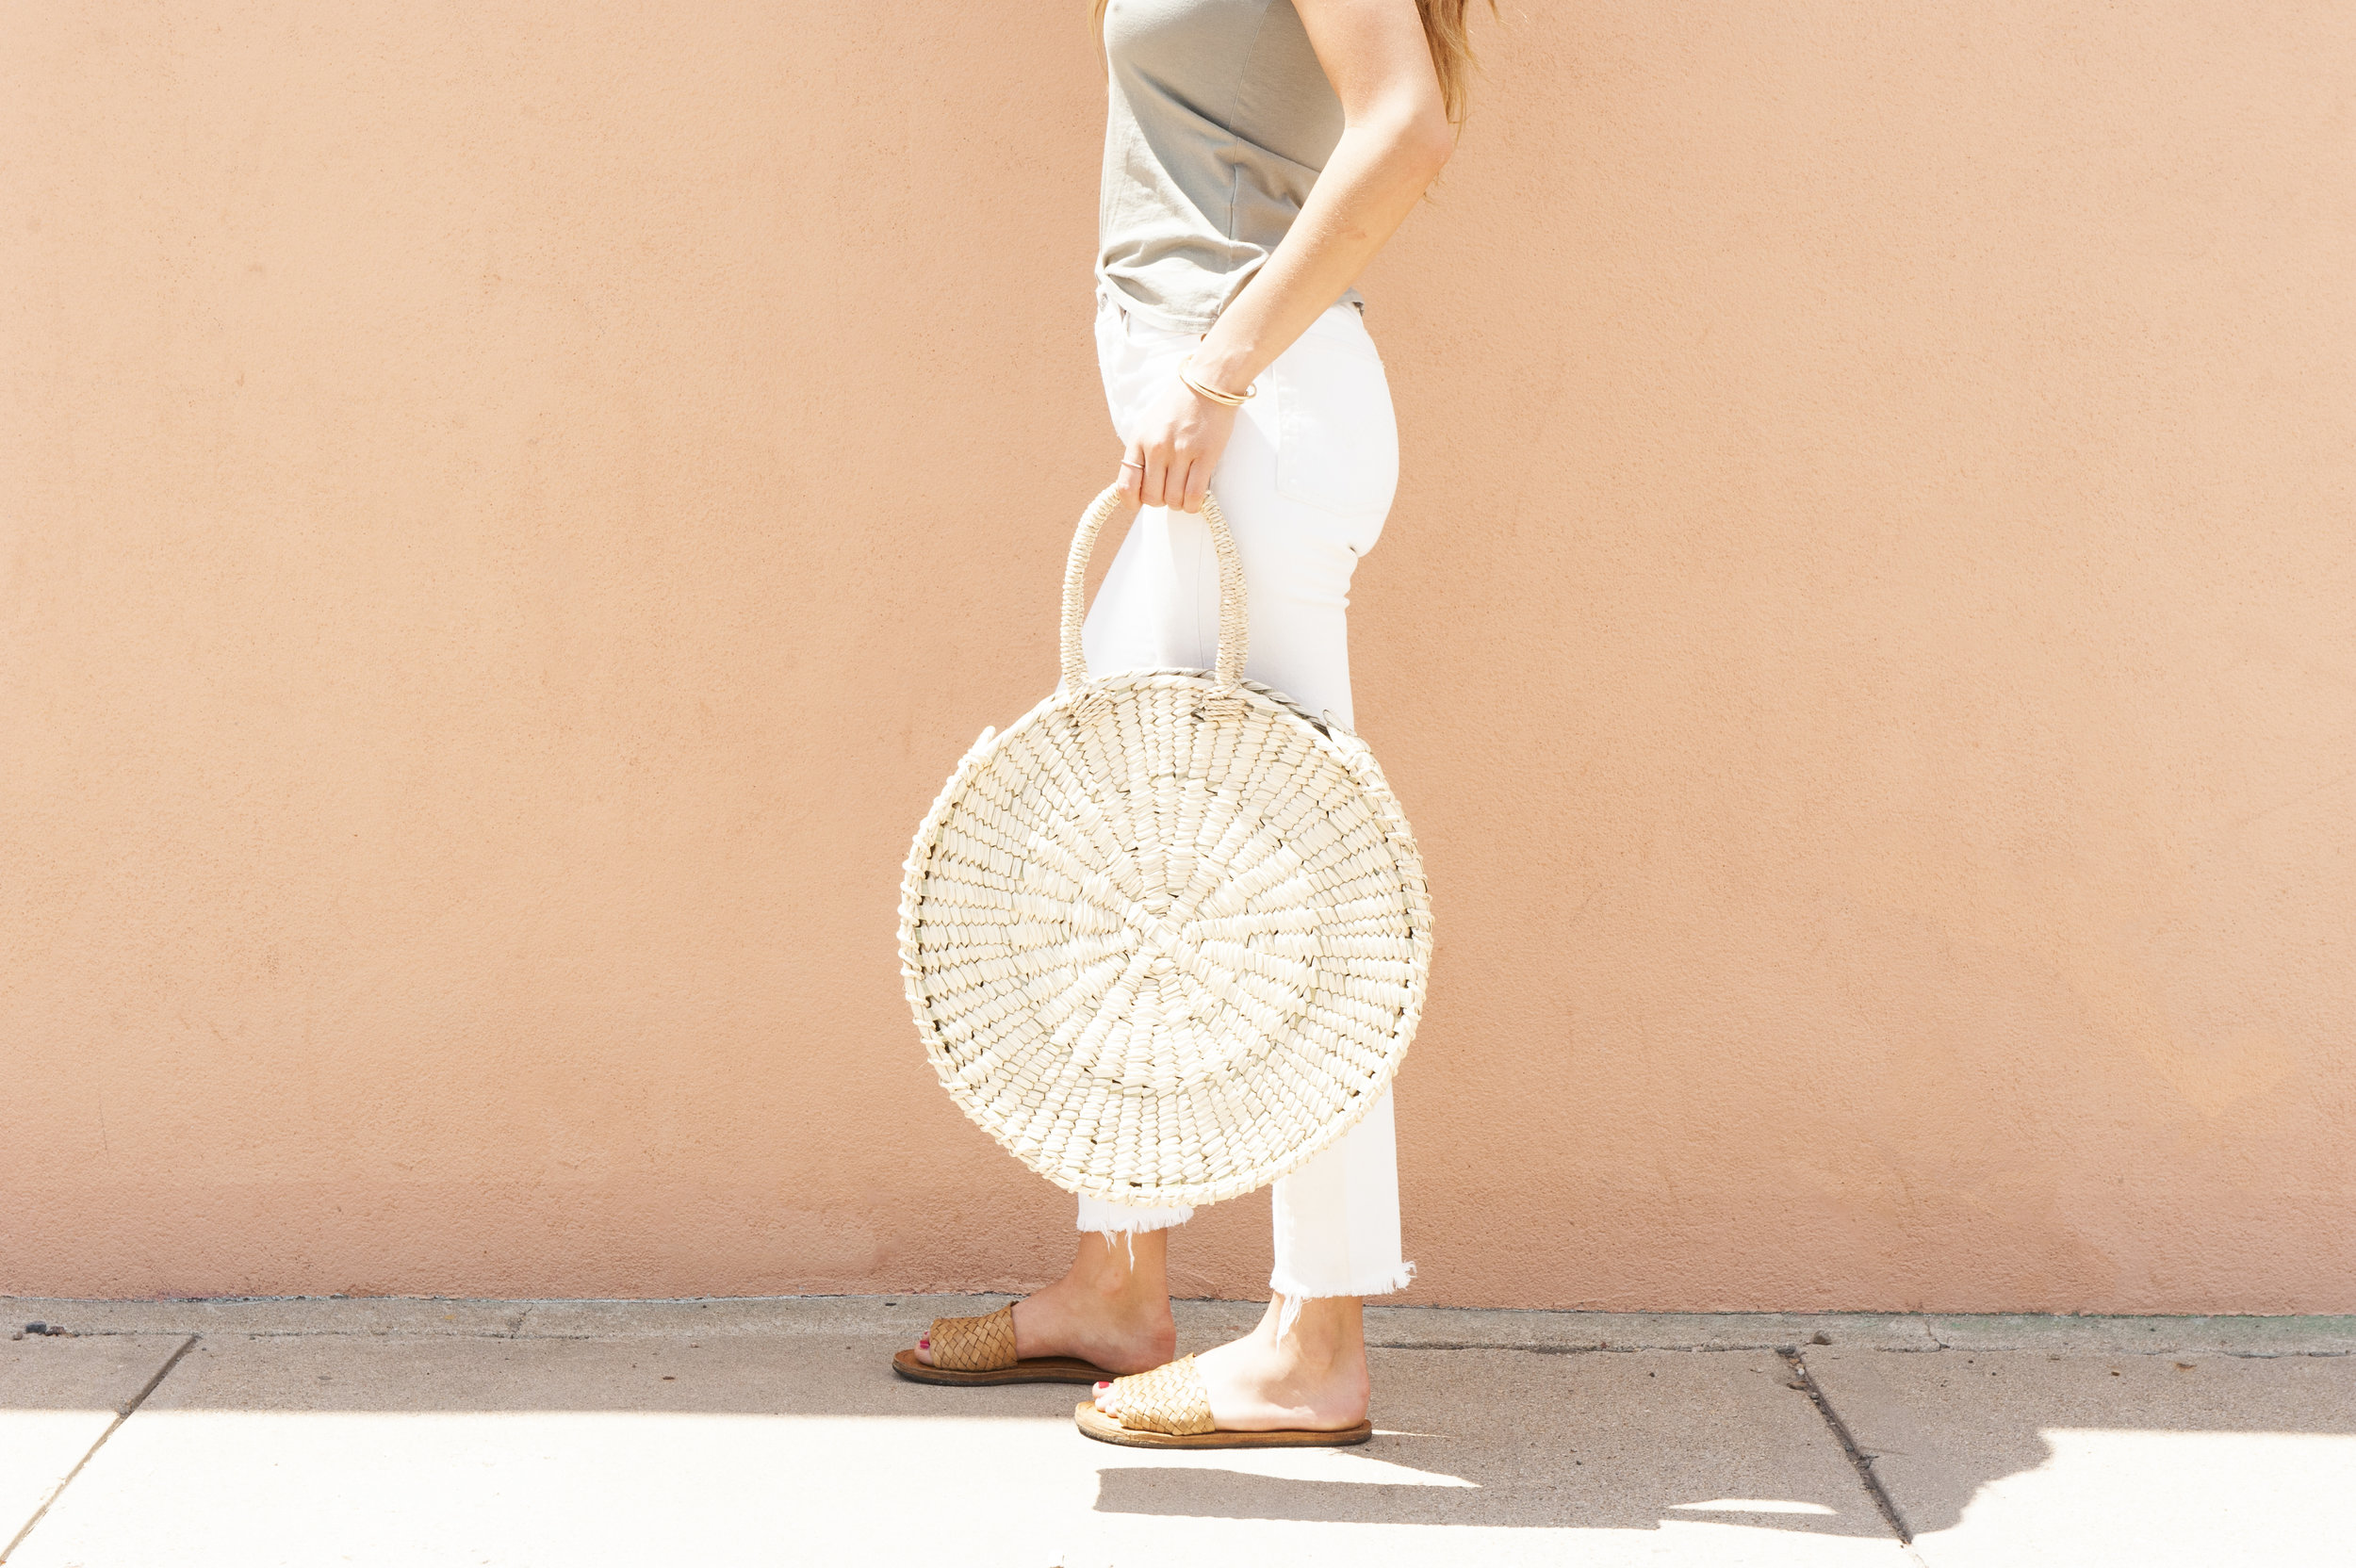 Handwoven Round Palm Bag - on sale 30%